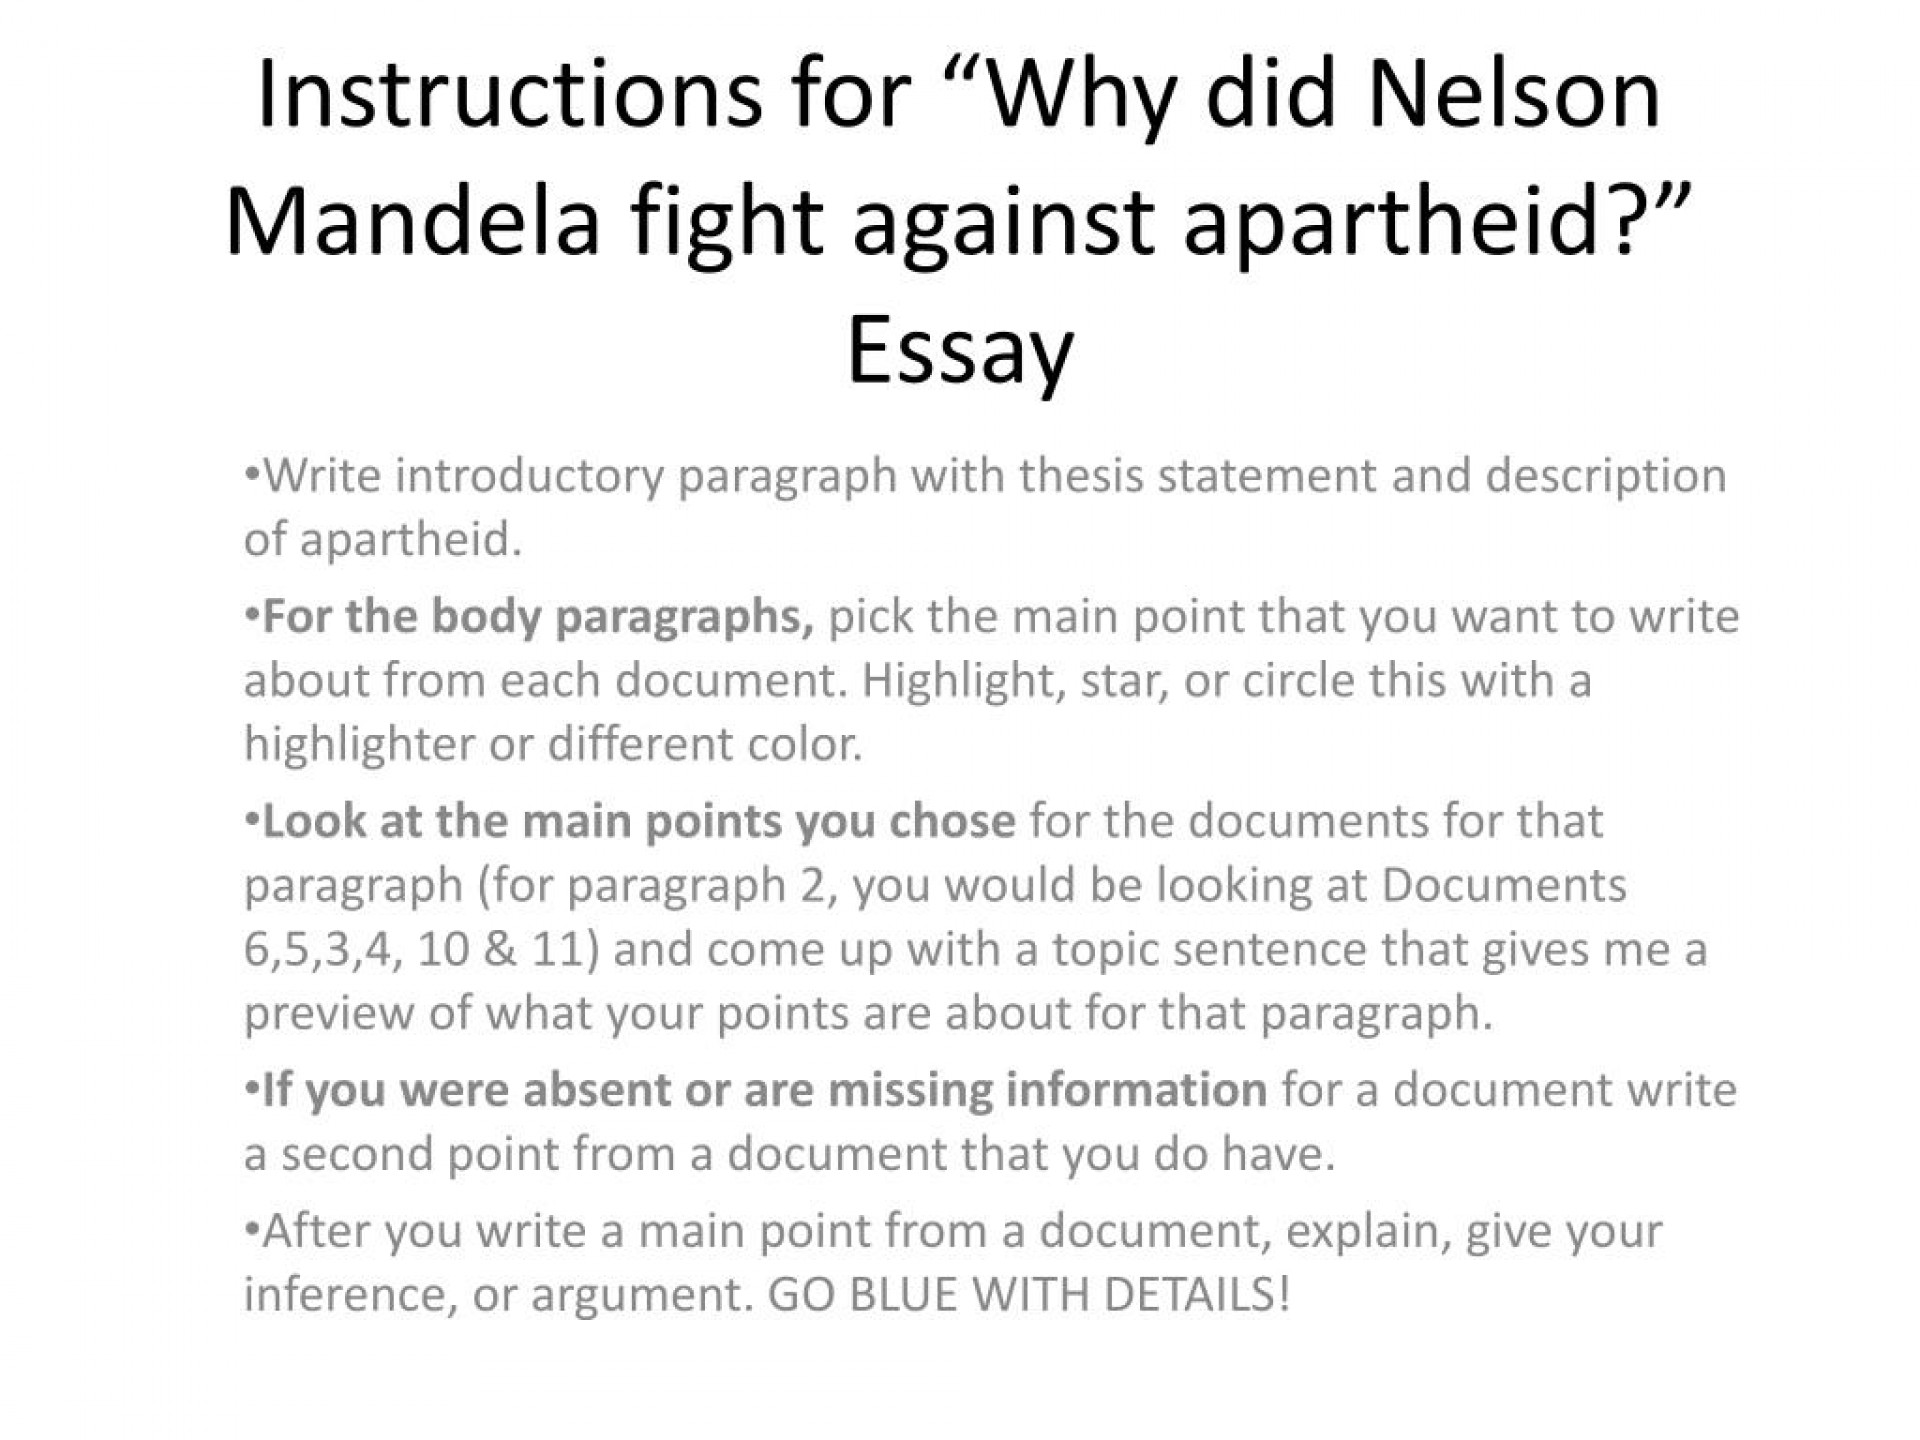 002 Instructions For Why Did Nelson Mandela Fight Against Apartheid Essay L Archaicawful Questions Research Paper Topics 1920